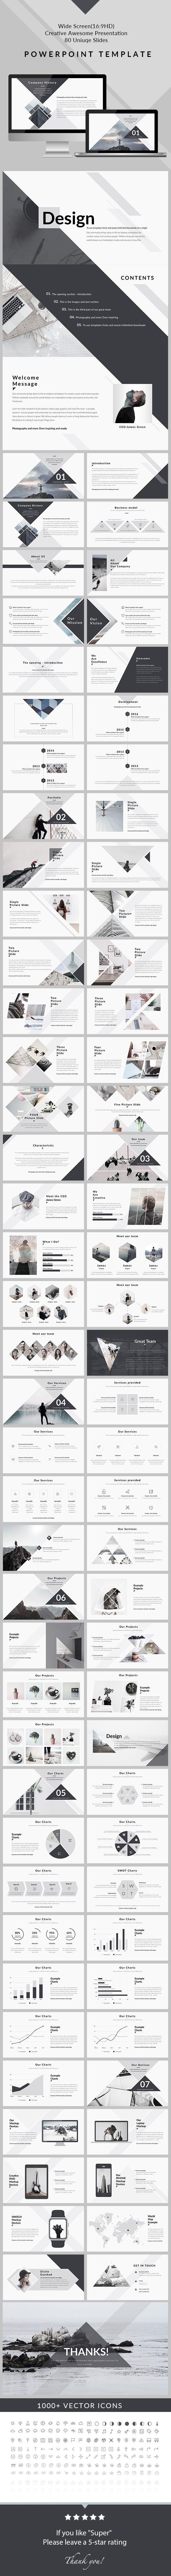 business infographic design clean creative powerpoint